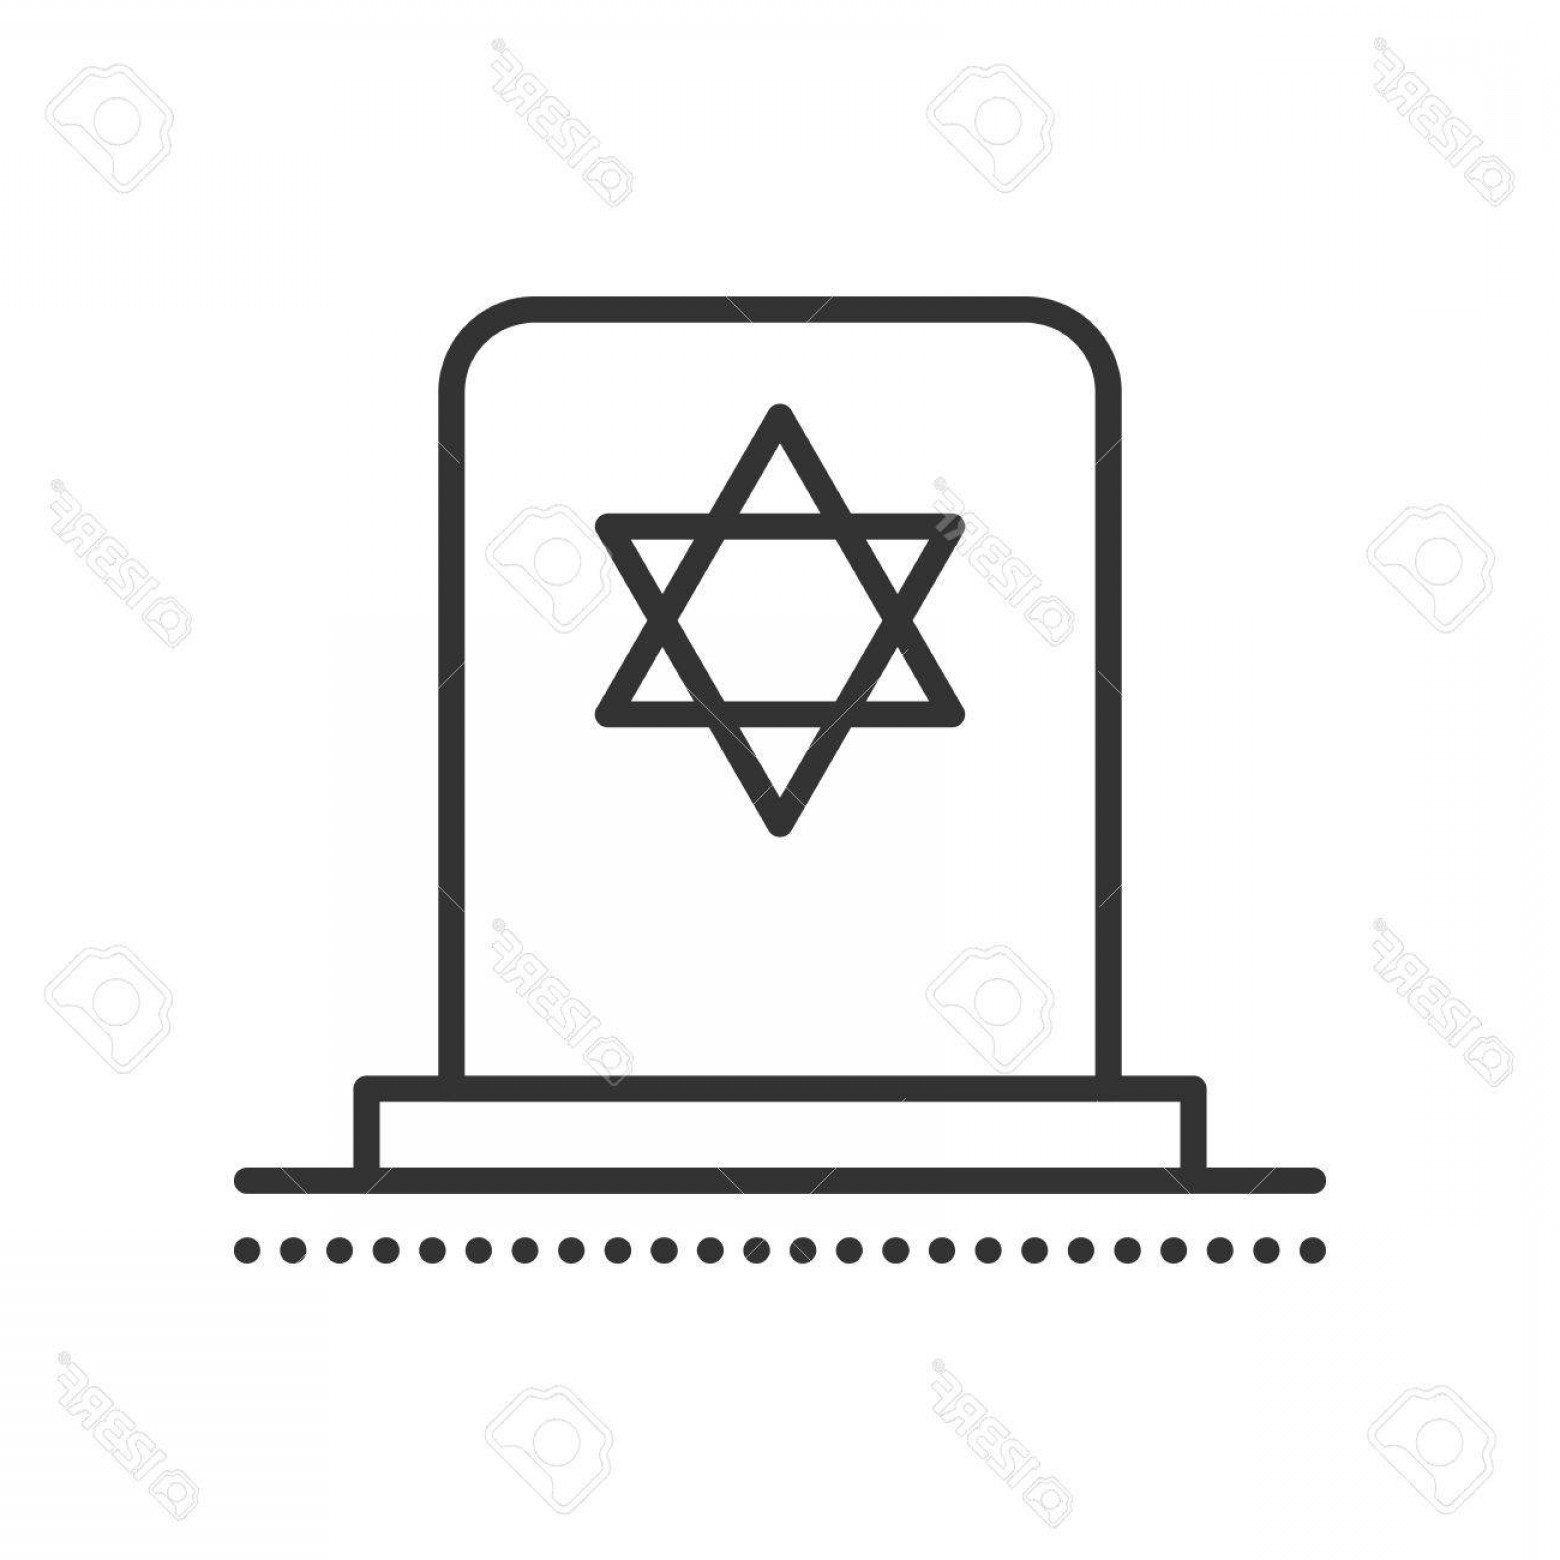 Gravestone Outline Vector: Photostock Vector Tombstone With Star Of David Jewish Grave Stone Symbol Of Death And Funeral Gravestone Flat Icon Vec